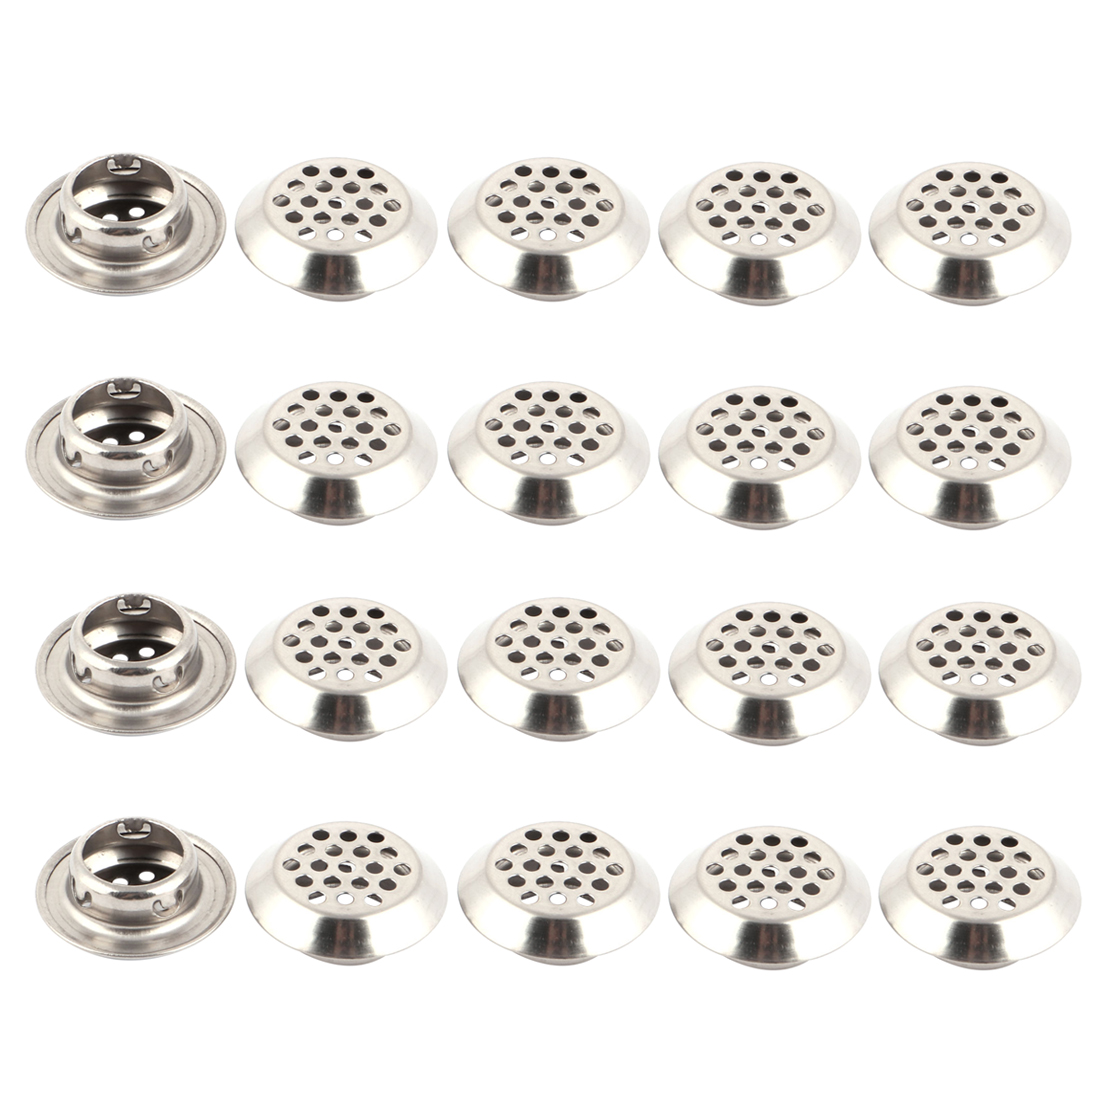 Home Metal Furniture Wardrobe Perforated Mesh Garderobe Air Vents 19mm Dia 20pcs